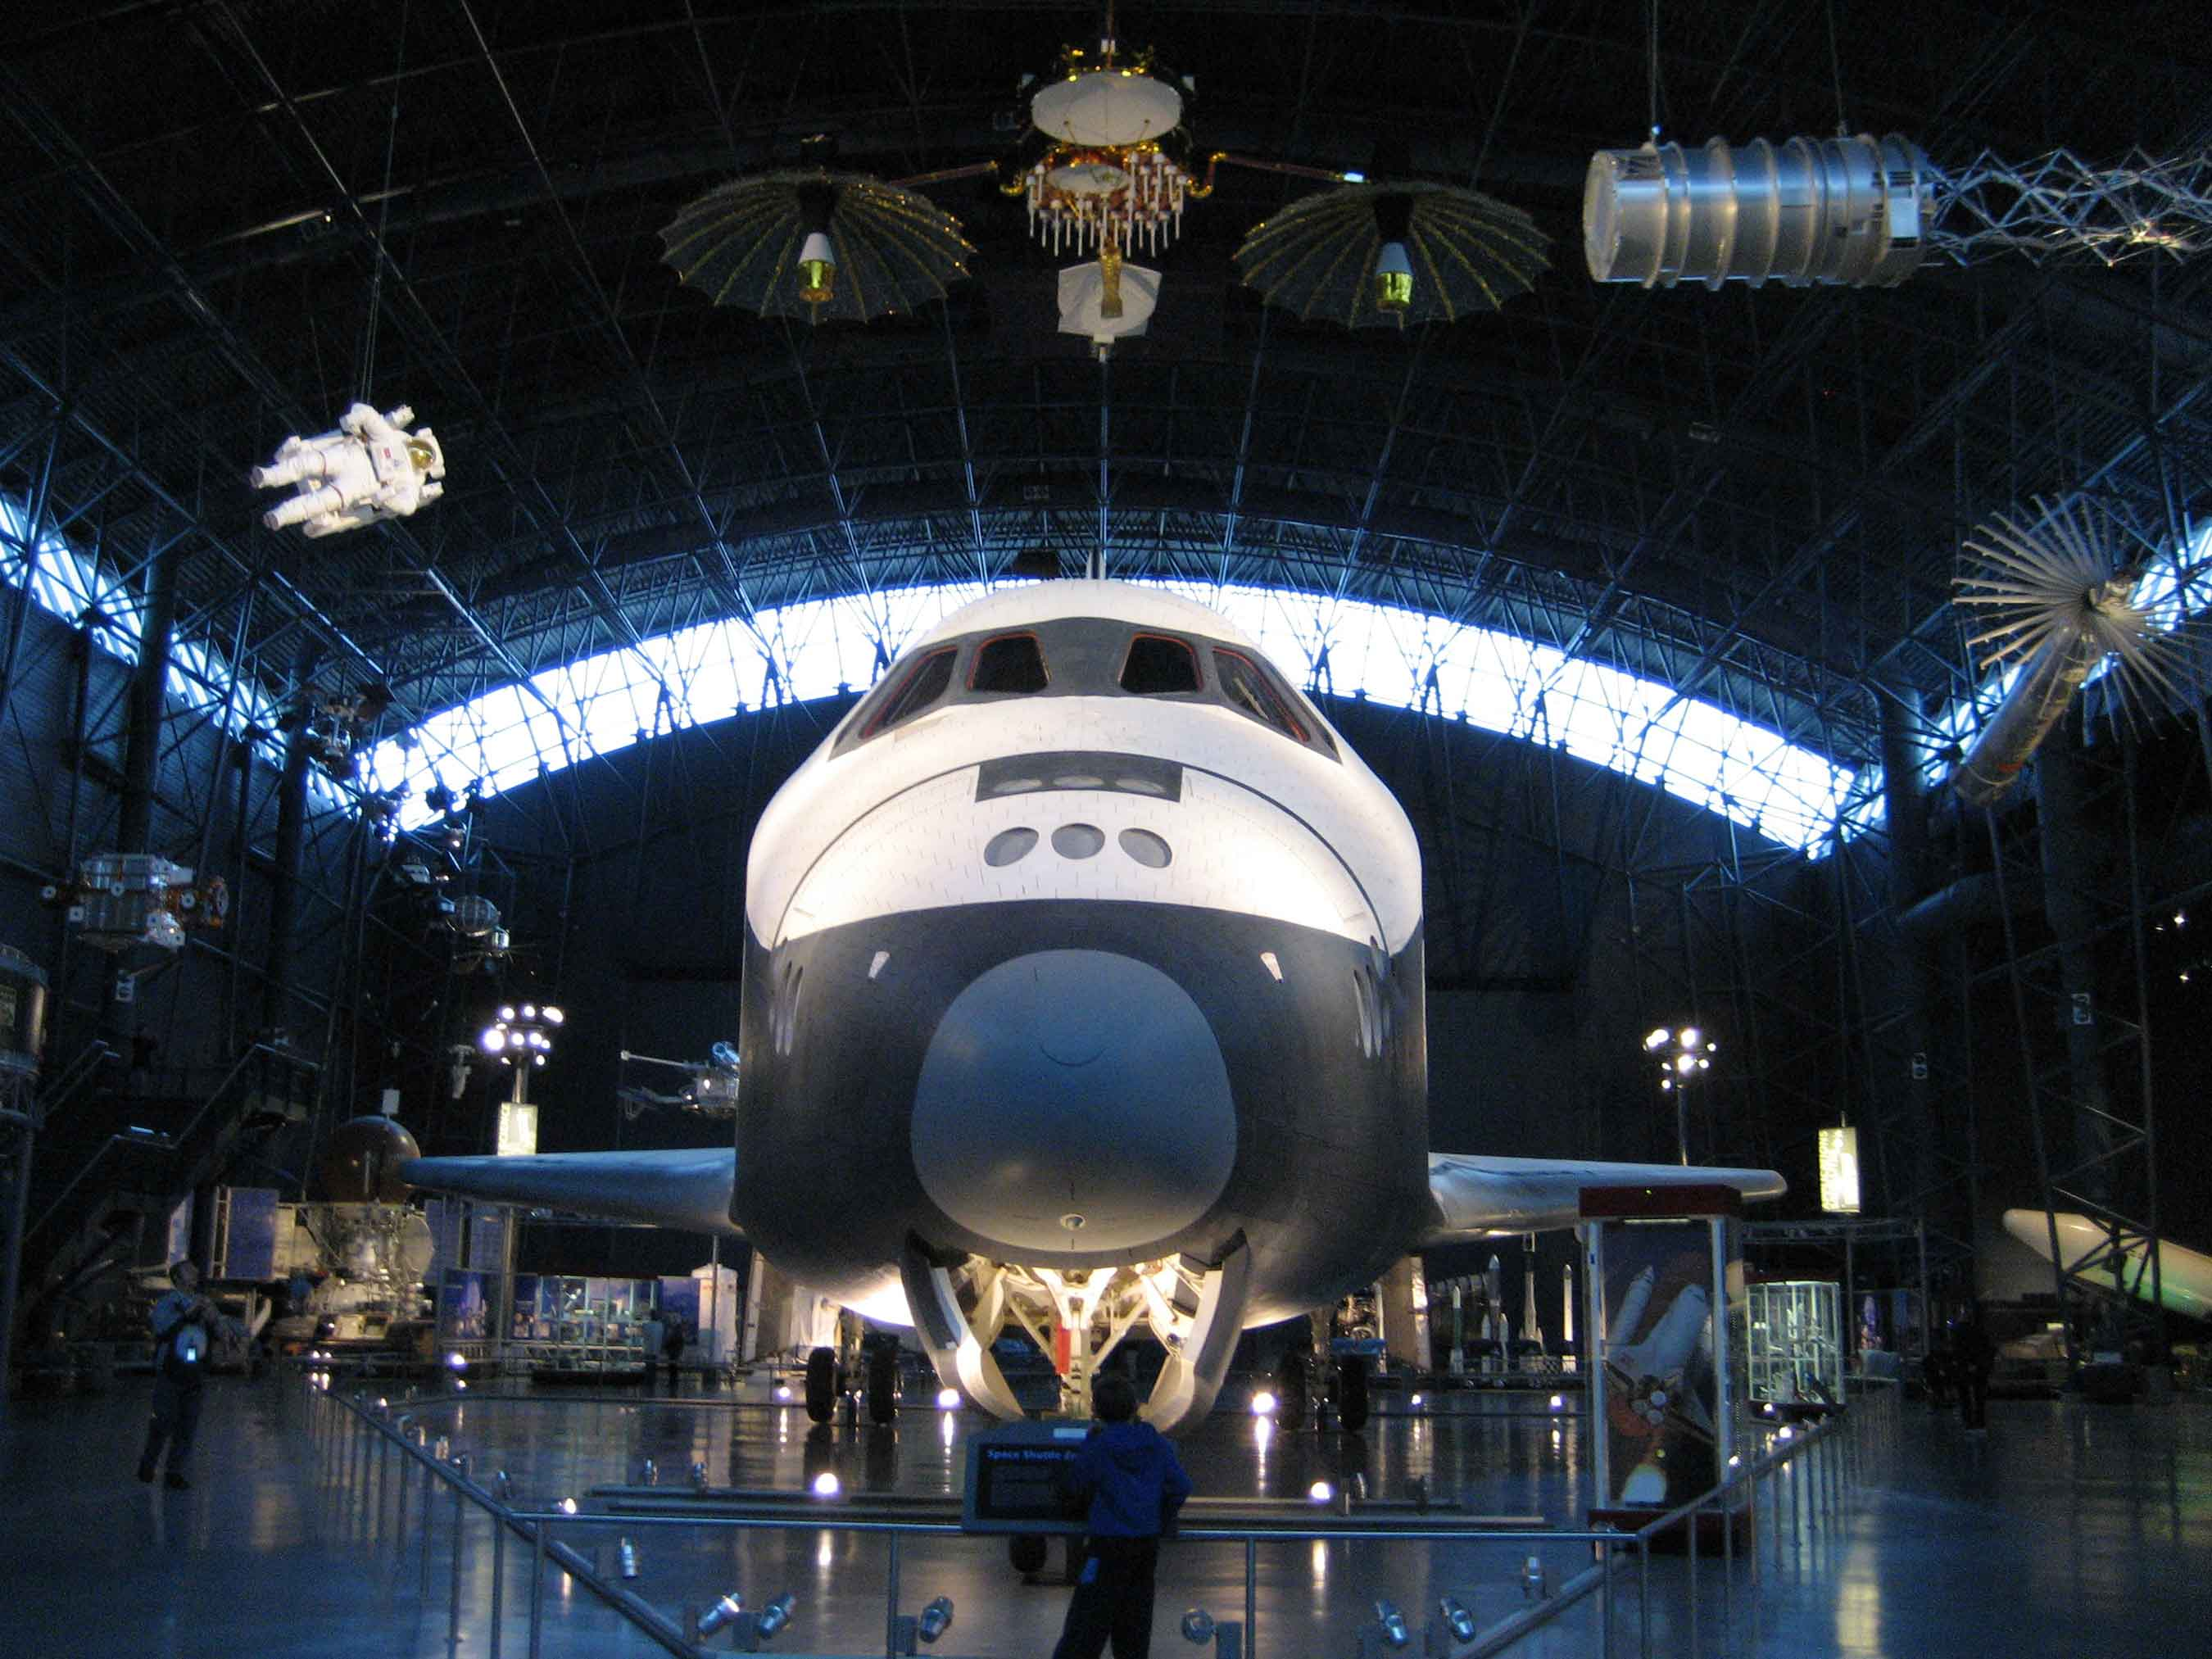 The Smithsonian Air and Space Museum in Chantilly, VA is the top space-themed attraction in the U.S., according to TripAdvisor. (A TripAdvisor traveler photo)